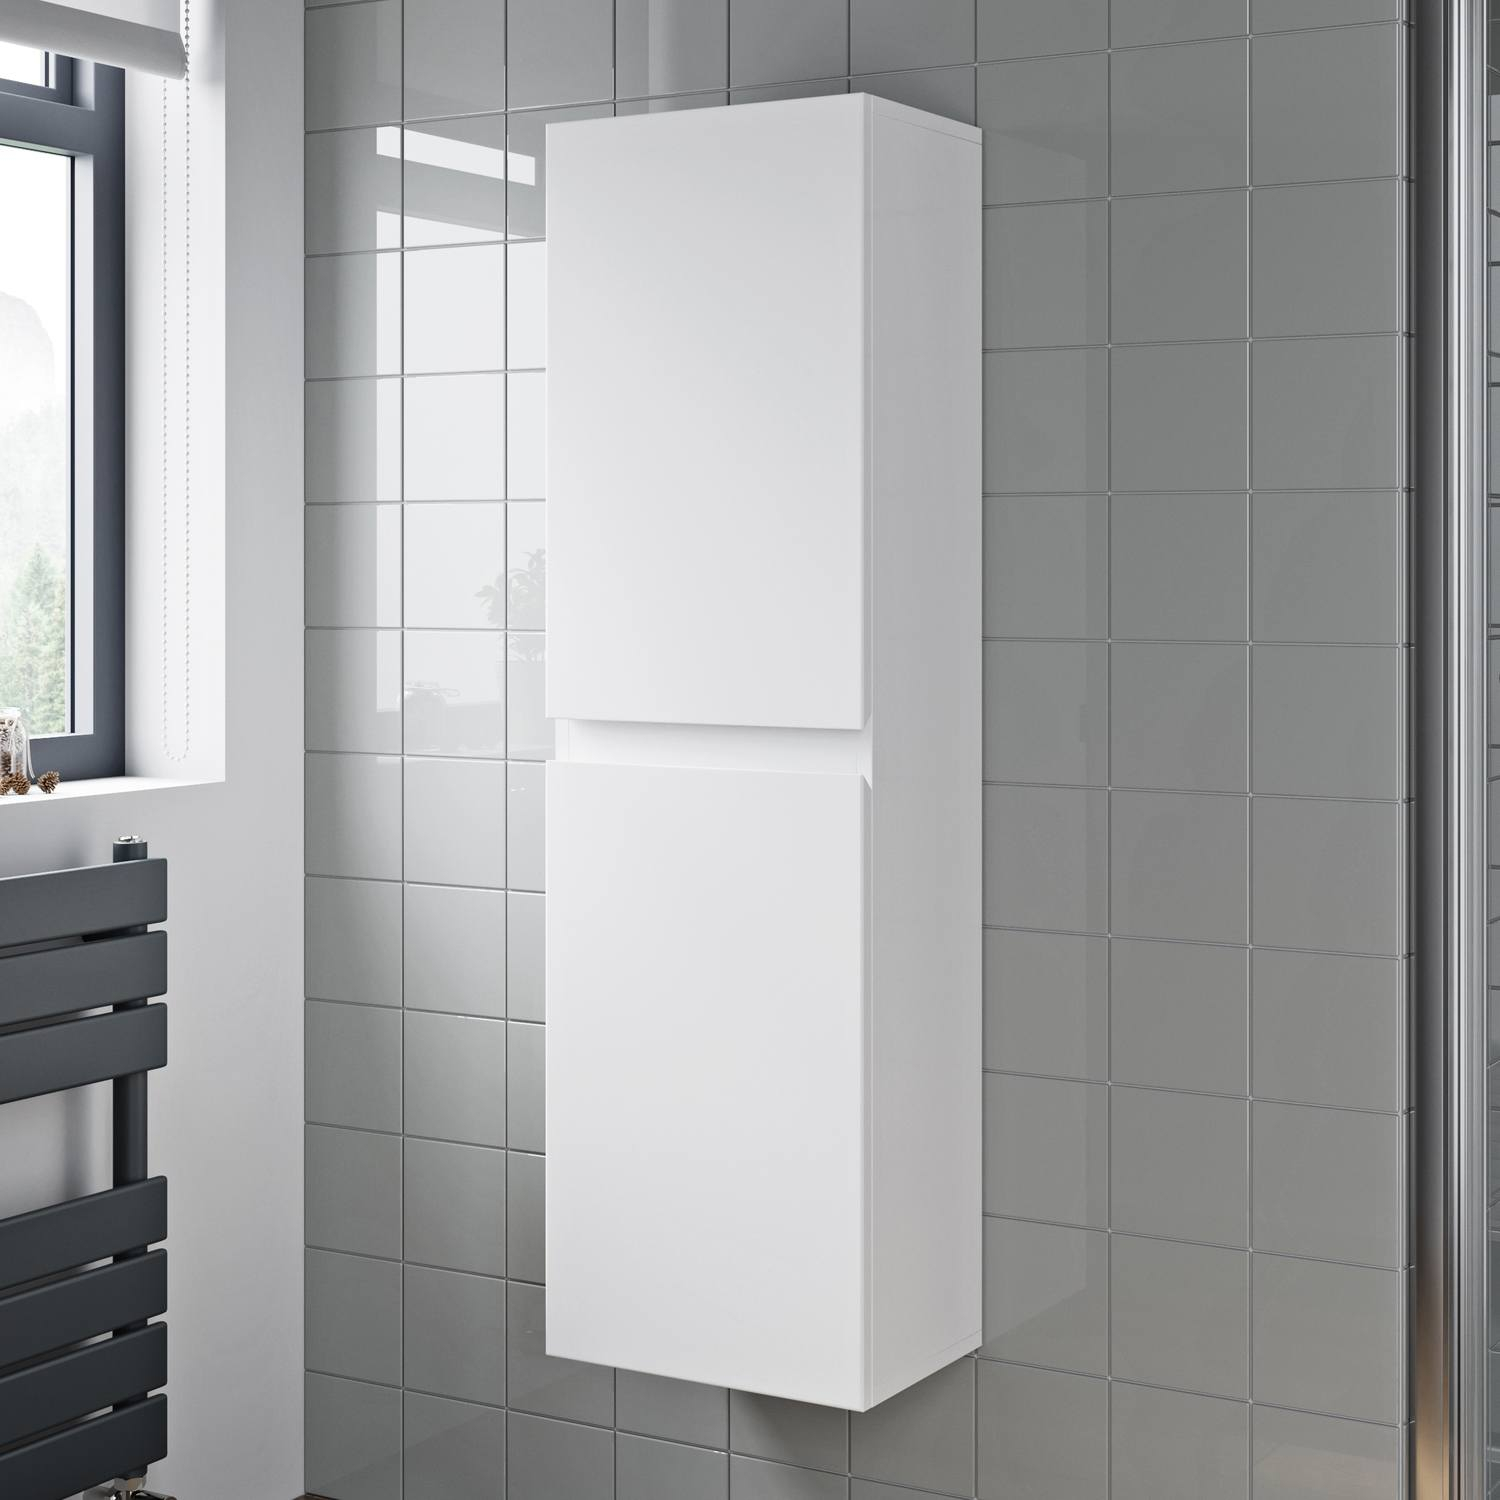 Details About 1200mm Tall Bathroom Wall Hung Storage Cabinet Cupboard Soft Close White Gloss pertaining to size 1500 X 1500